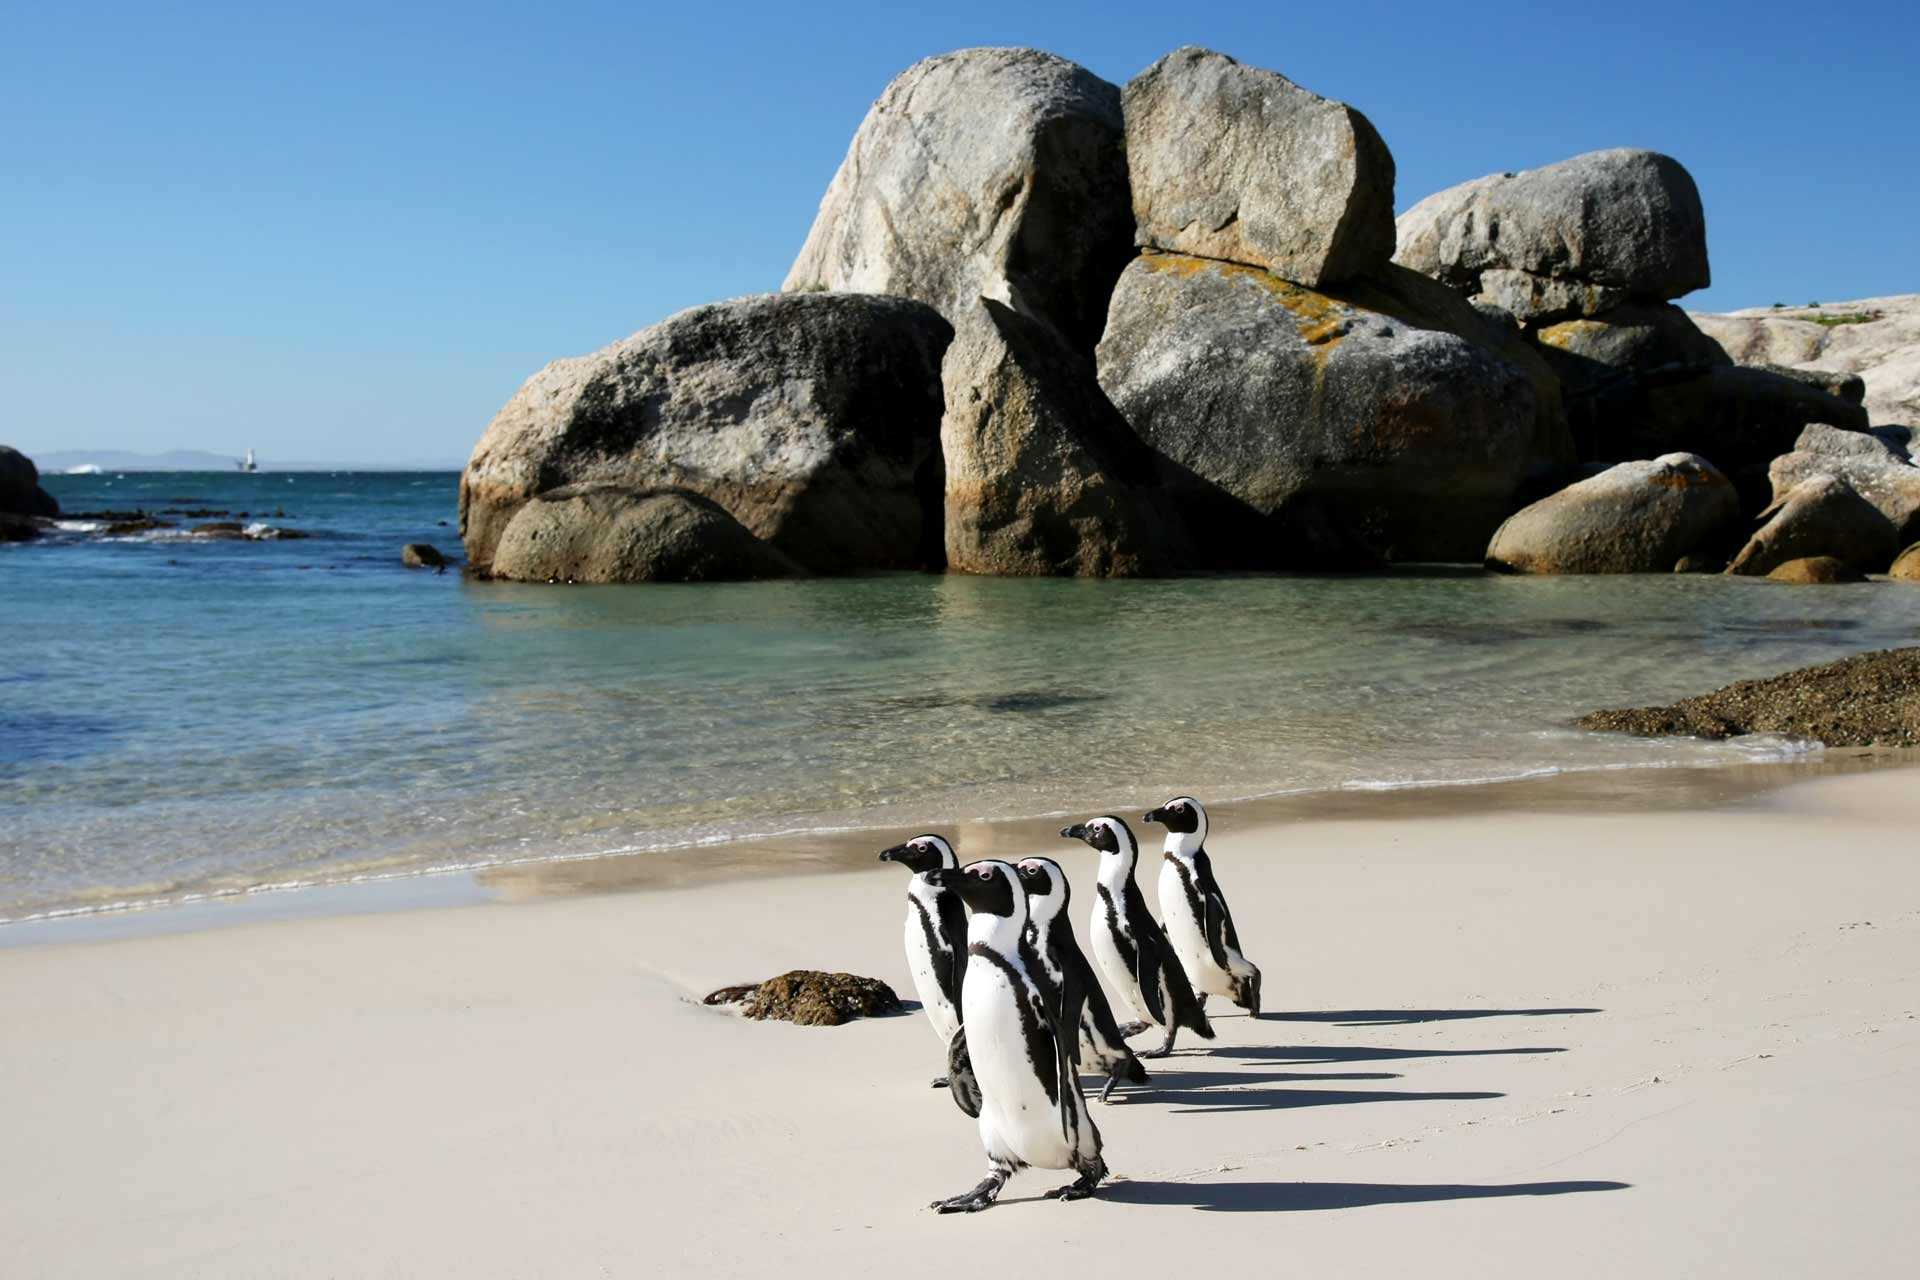 Penguins at boulders beach in Simons Town